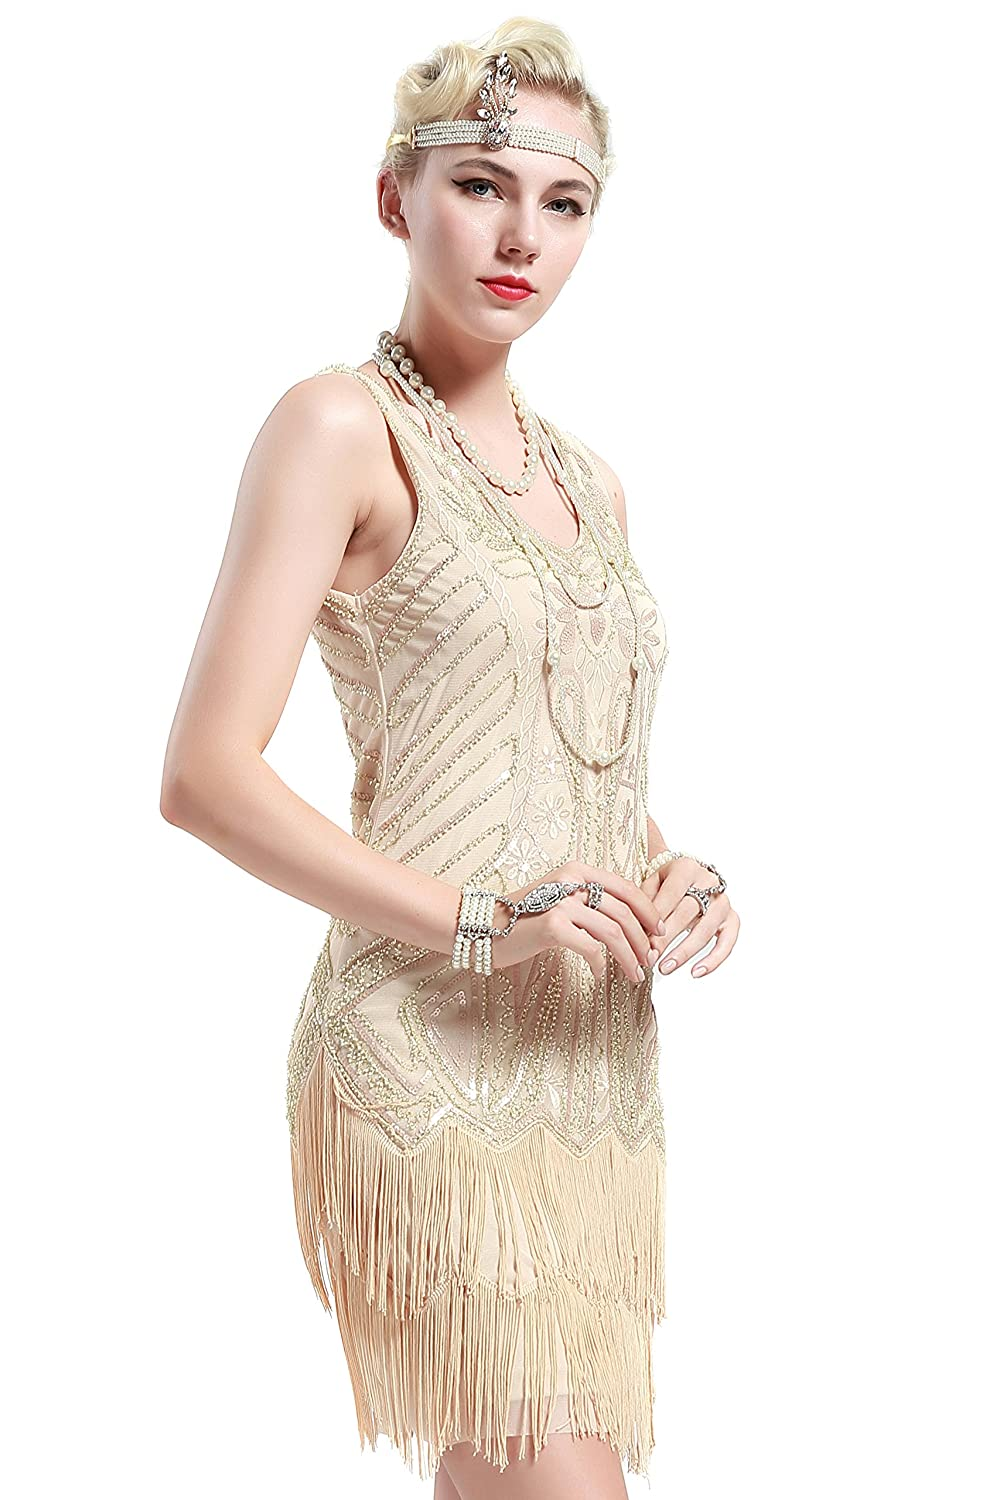 Vintage Inspired Cocktail Dresses, Party Dresses BABEYOND Womens Flapper Dresses 1920s V Neck Beaded Fringed Great Gatsby Dress $28.99 AT vintagedancer.com